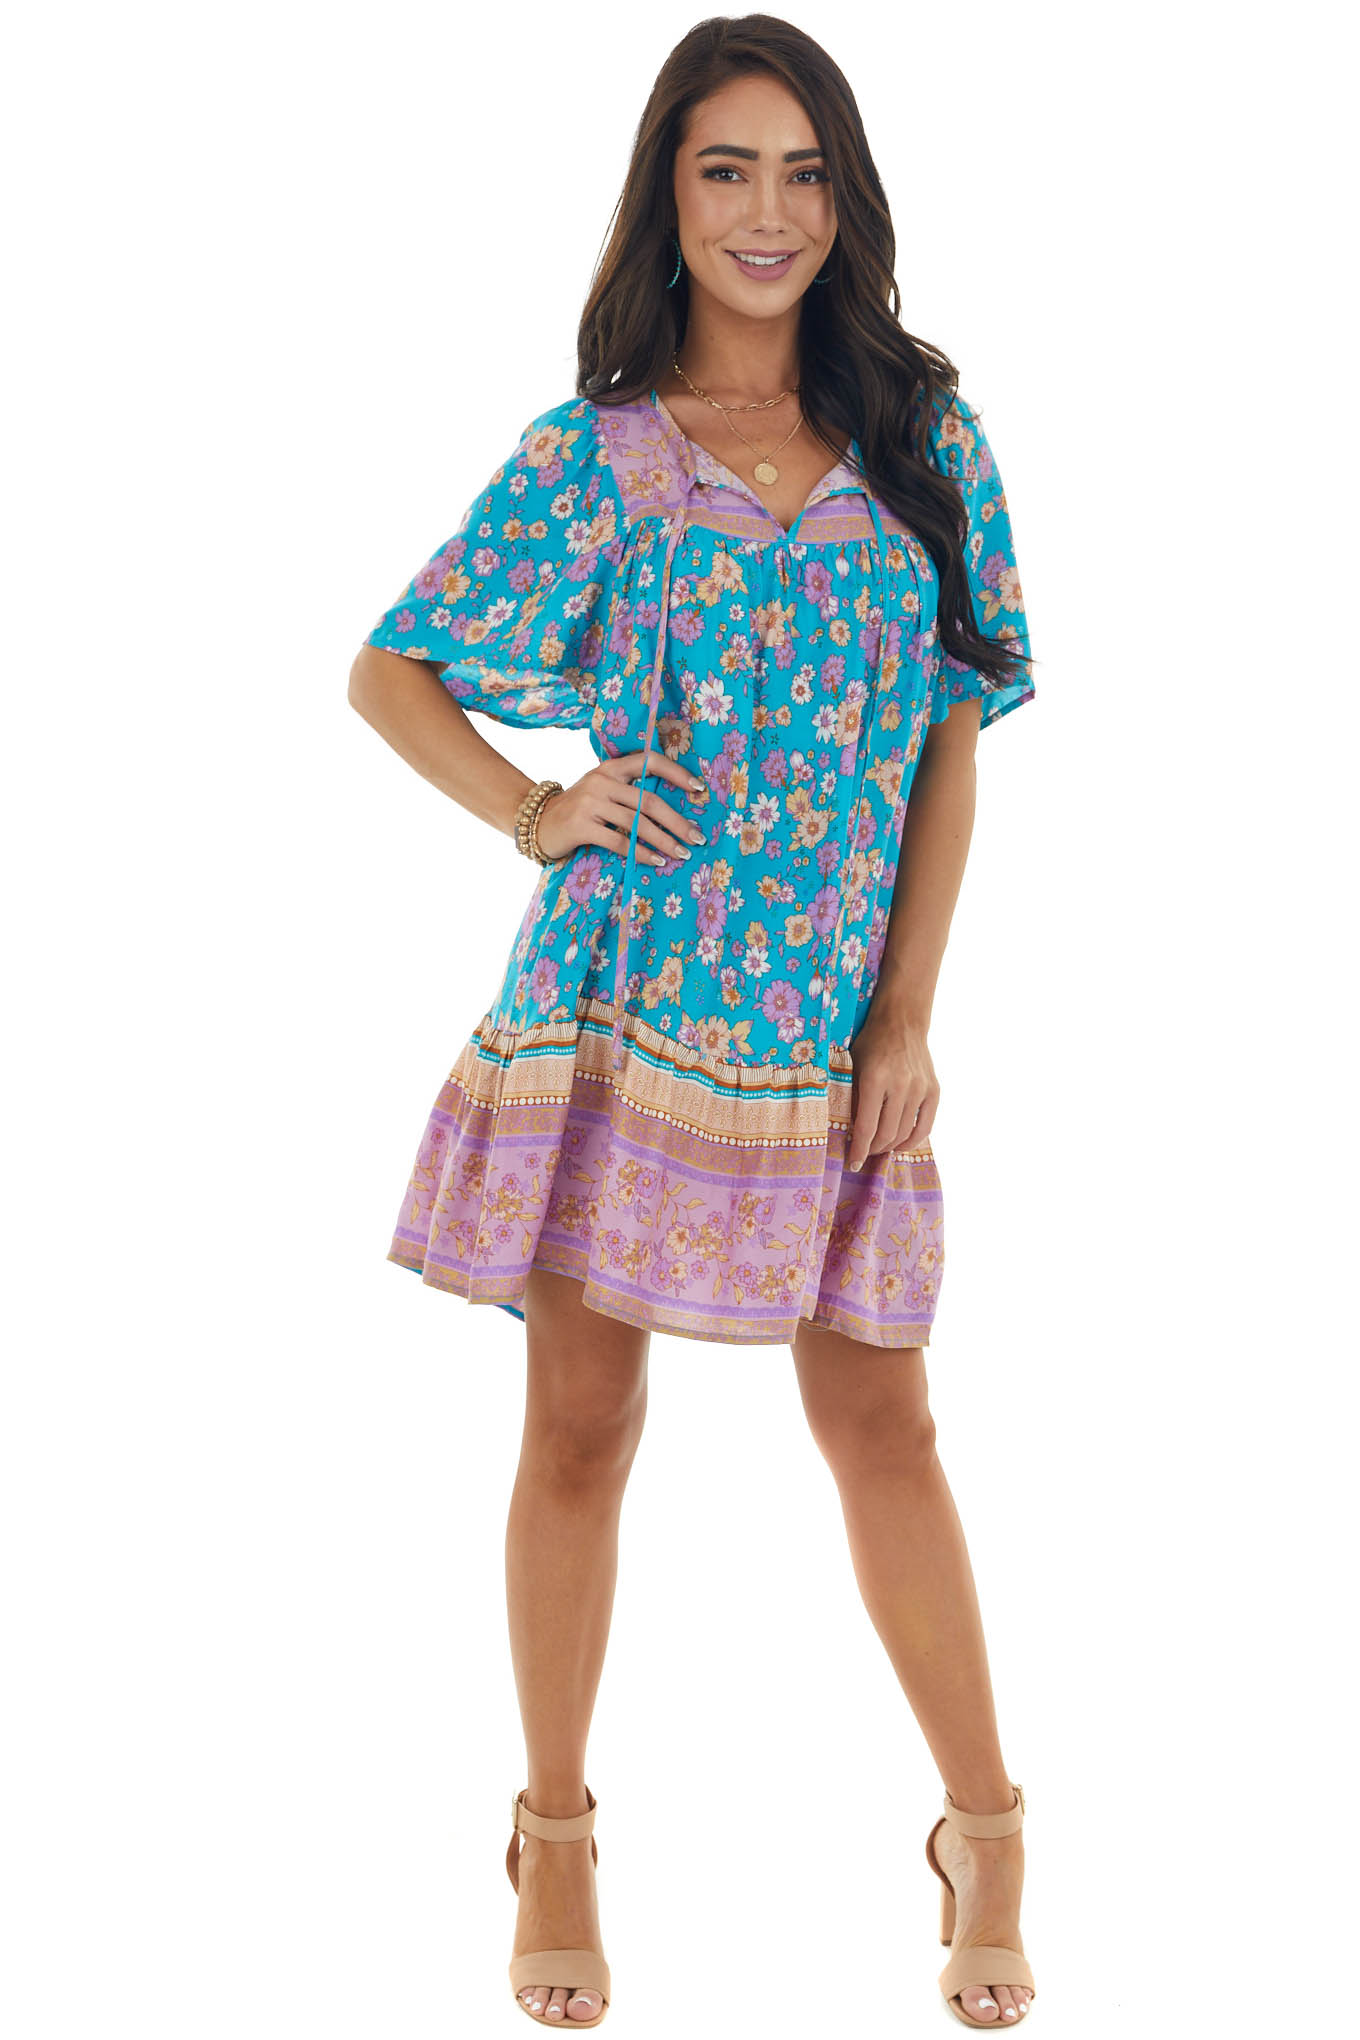 Teal Floral Print Short Dress with Front Tie